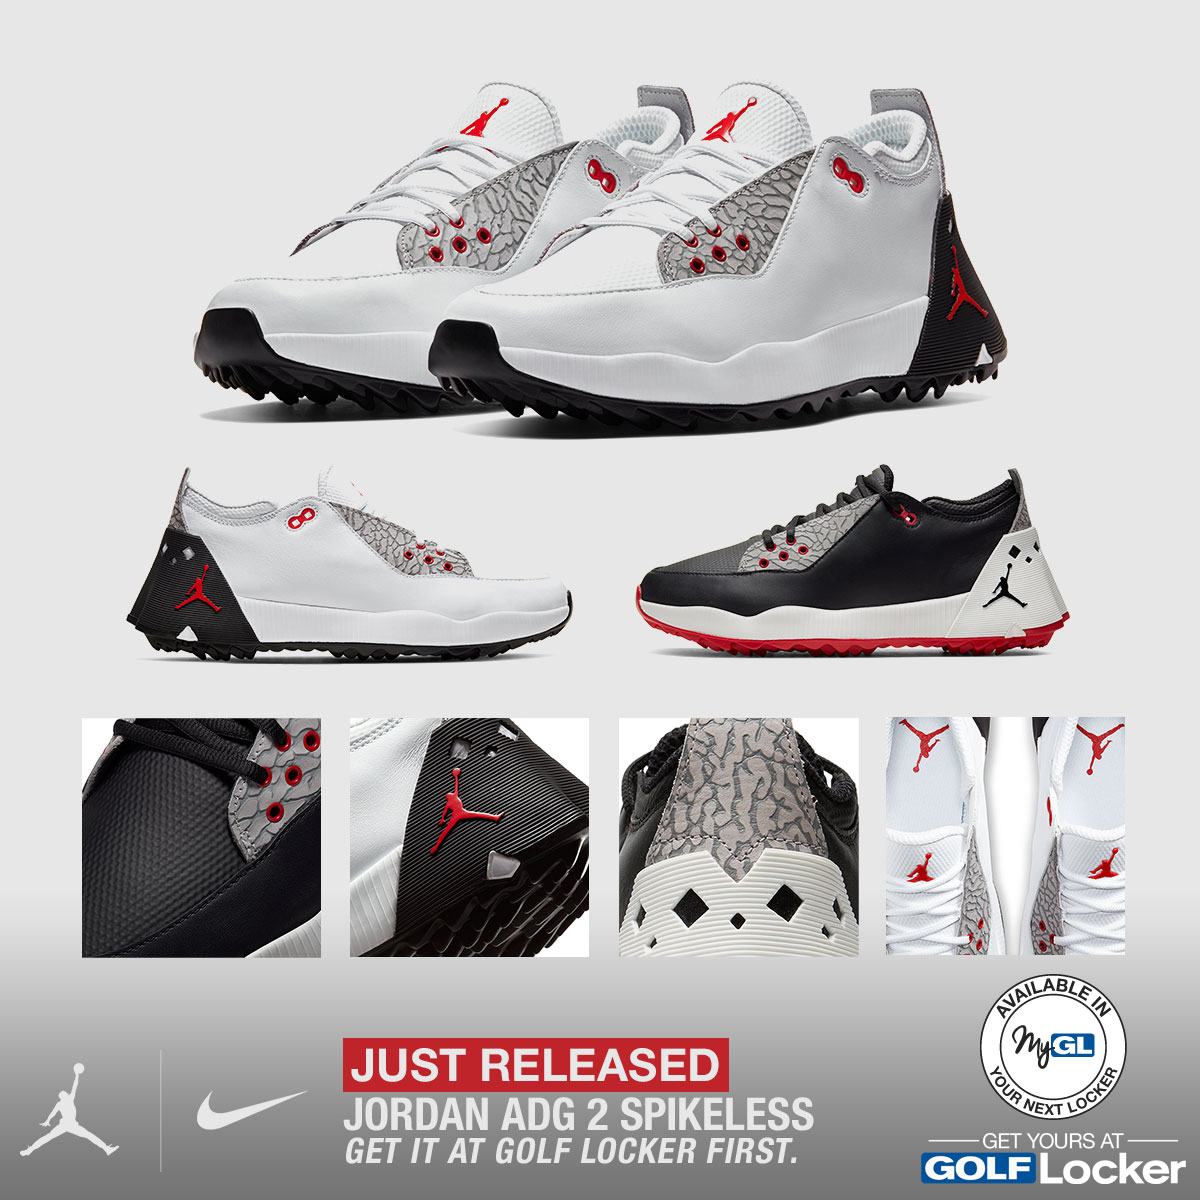 Nike Jordan ADG 2 Spikeless Golf Shoes - Just Released